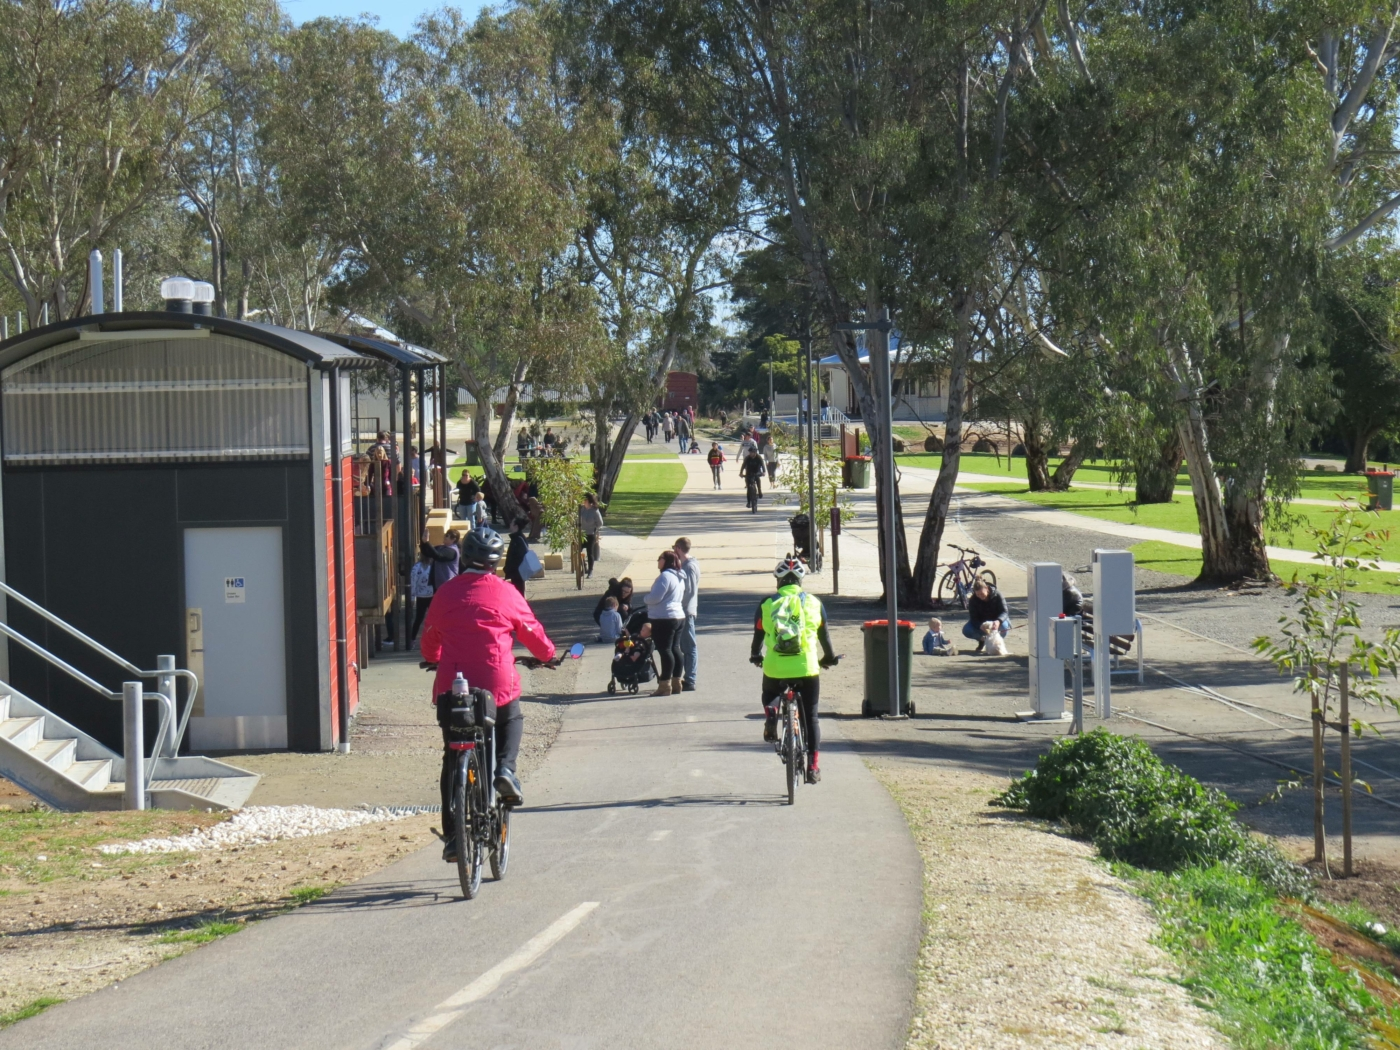 The Angaston station area has been transformed by the Council into a recreation centre for the community (2020)